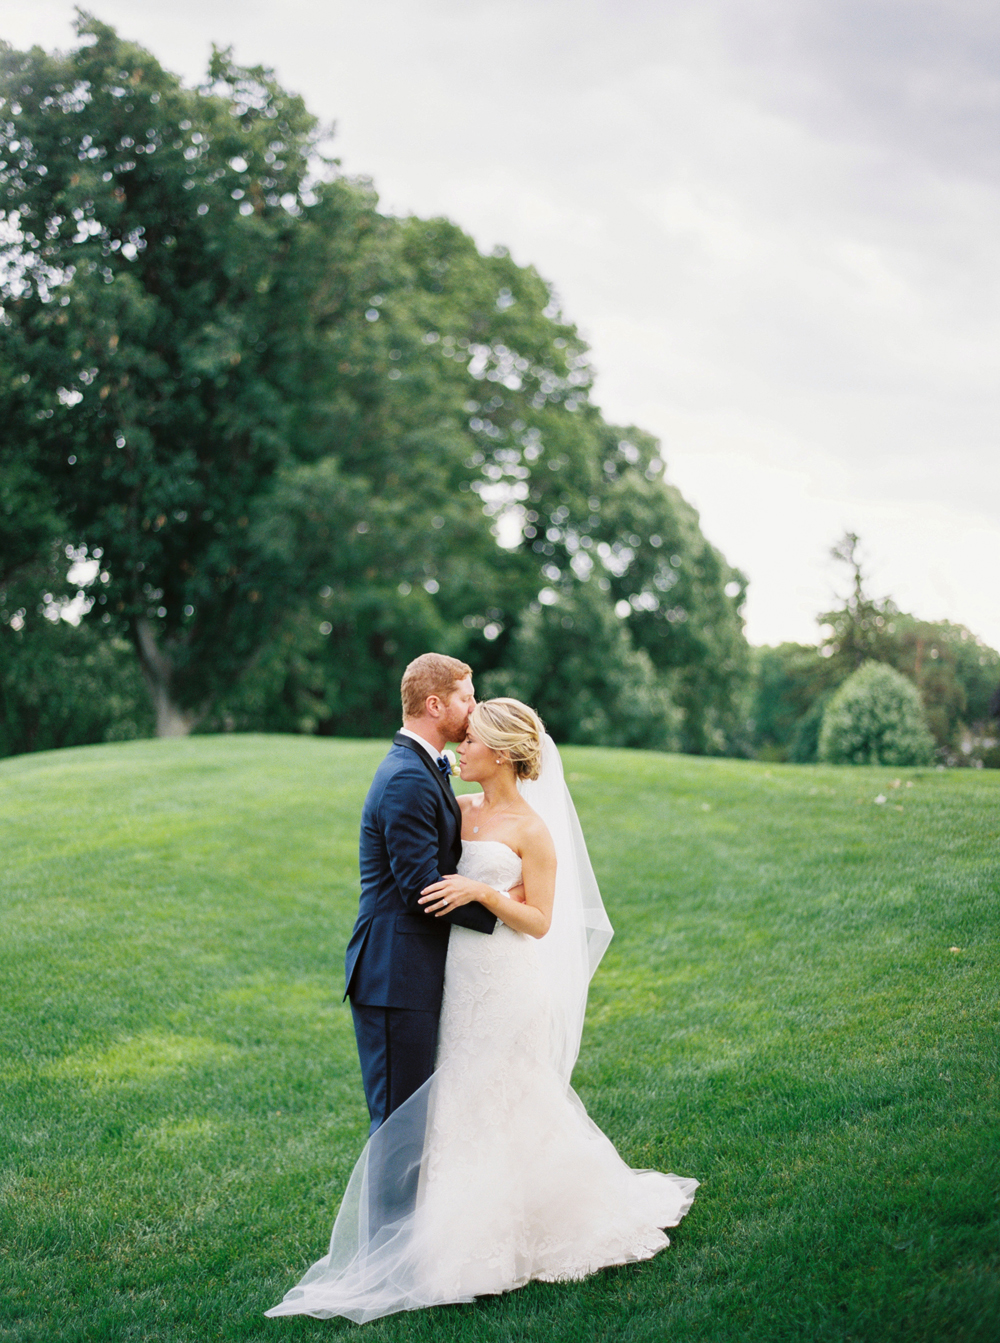 alexandra-elise-photography-ali-reed-caitlin-benn-film-oak-hill-wedding-018.jpg